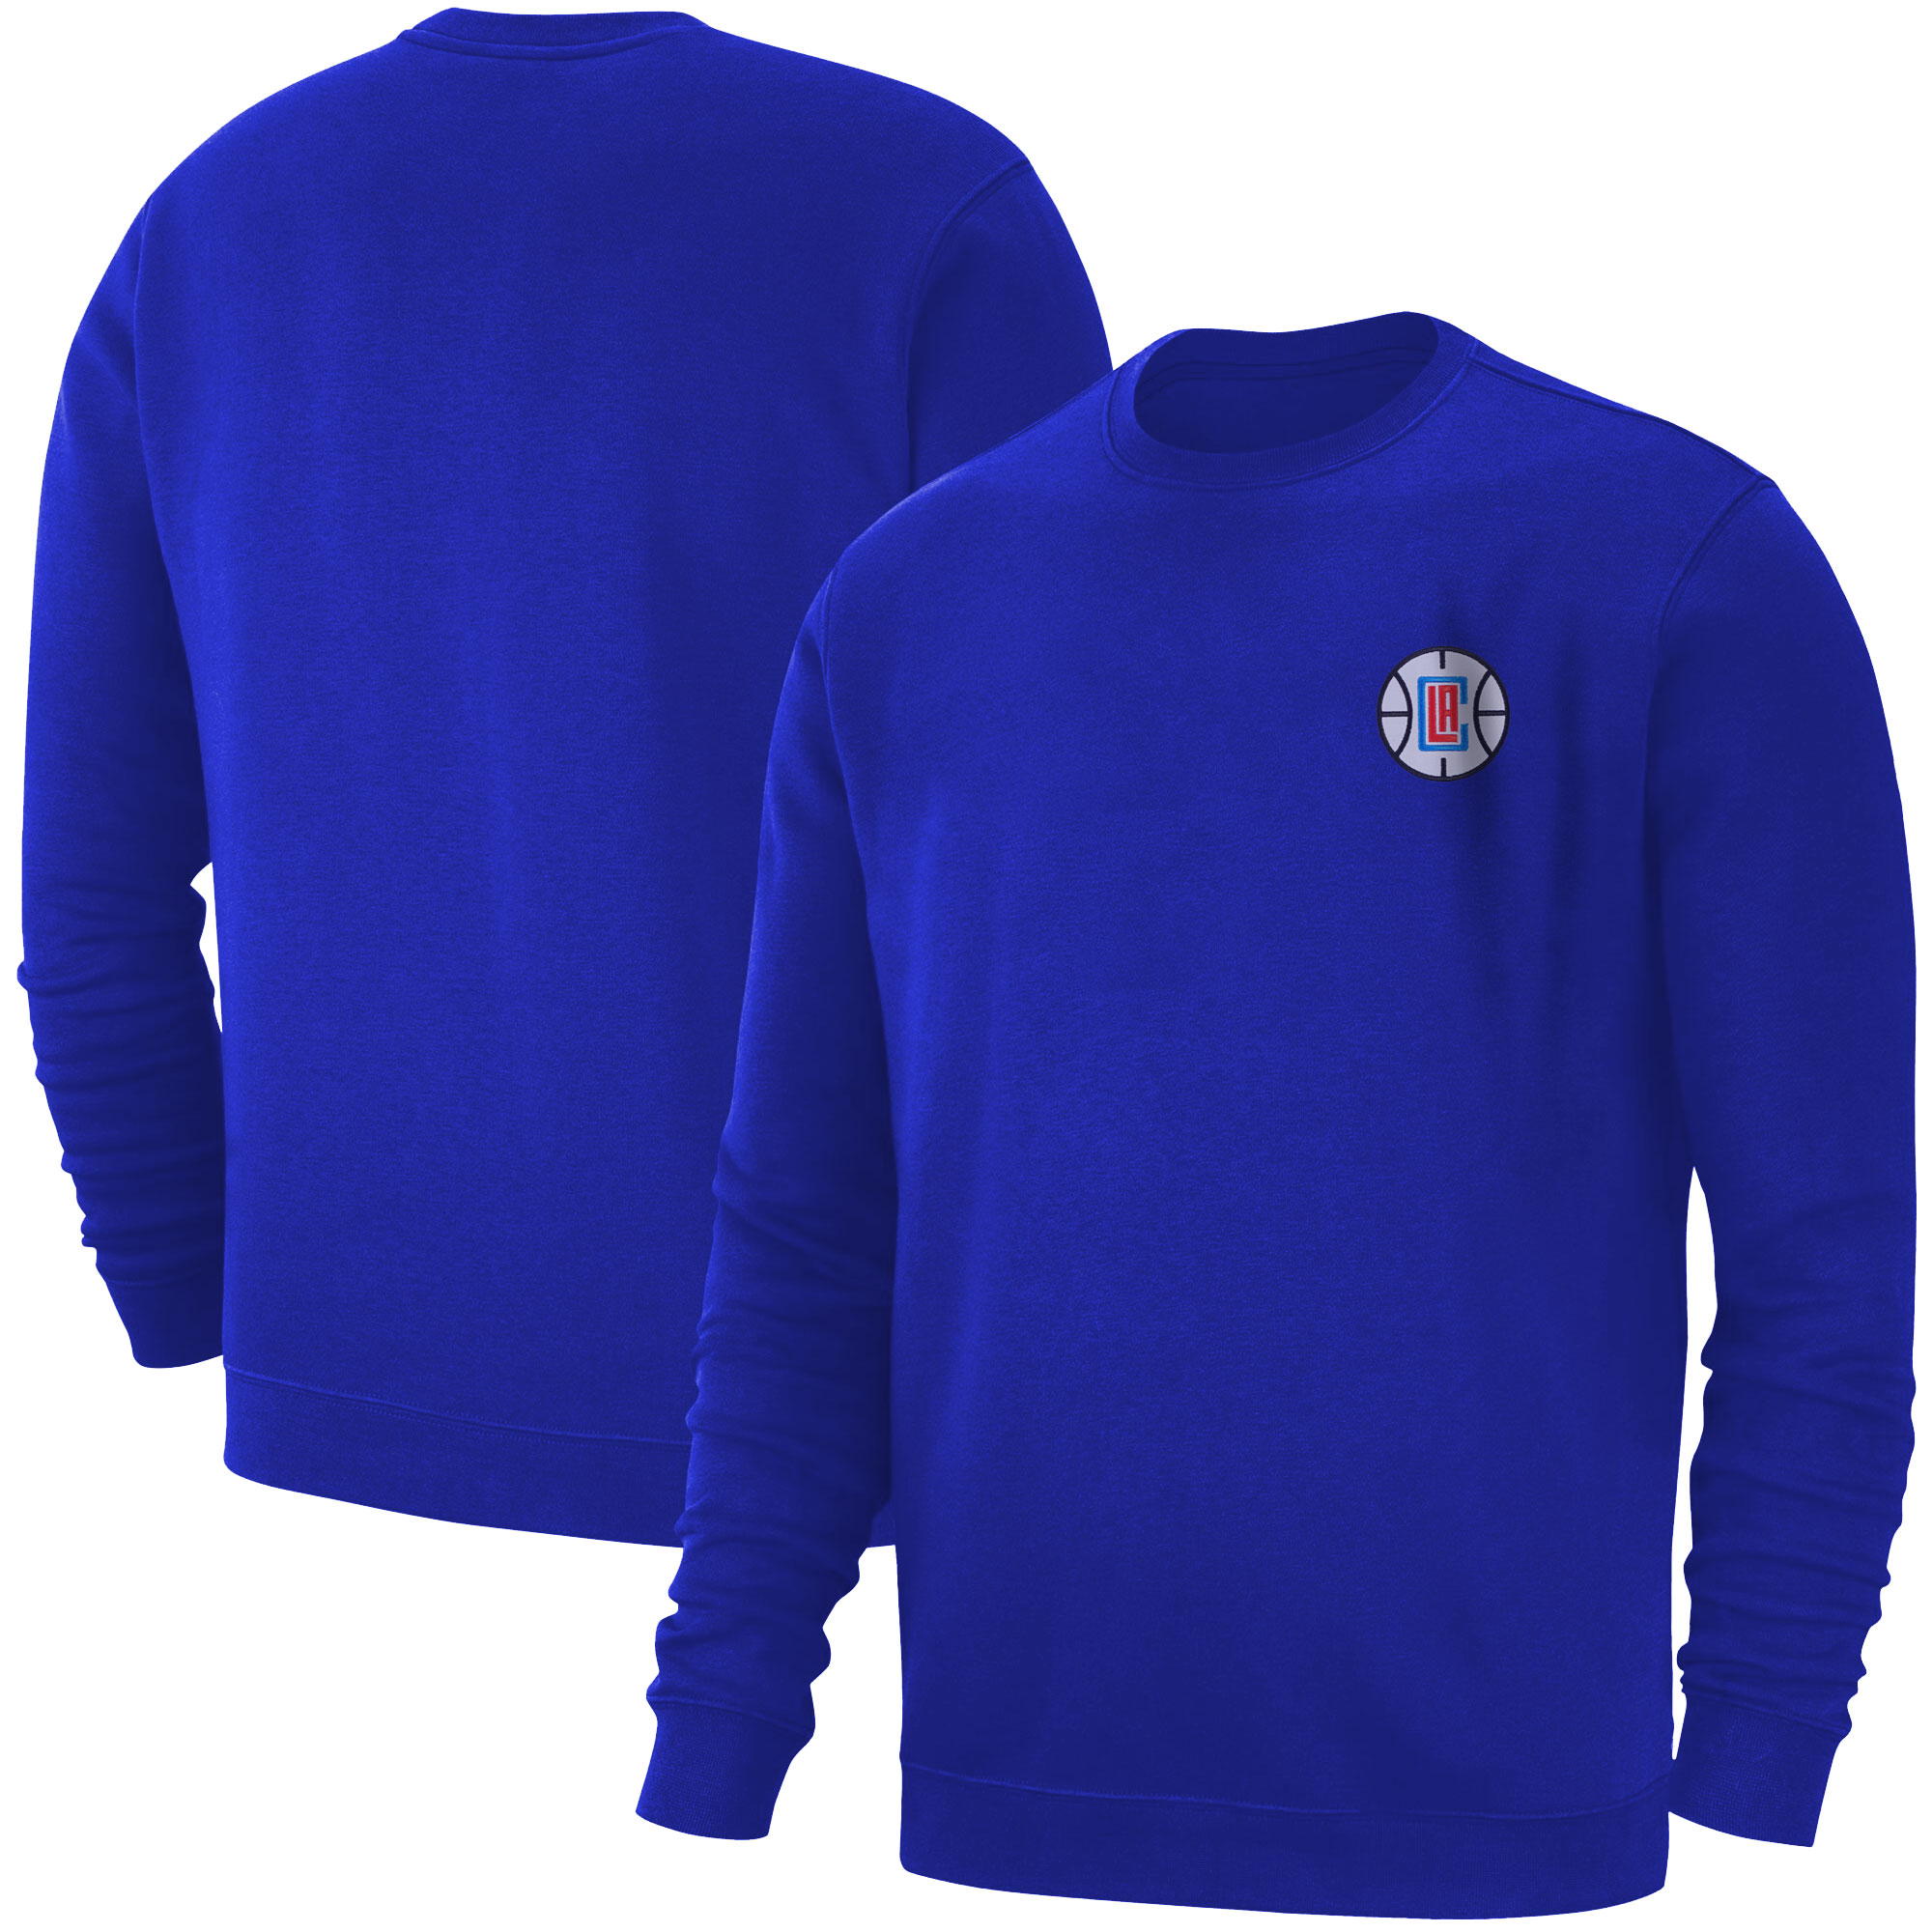 L.A. Clippers Basic (Örme)  (BSC-BLU-EMBR-CLIPPERS)